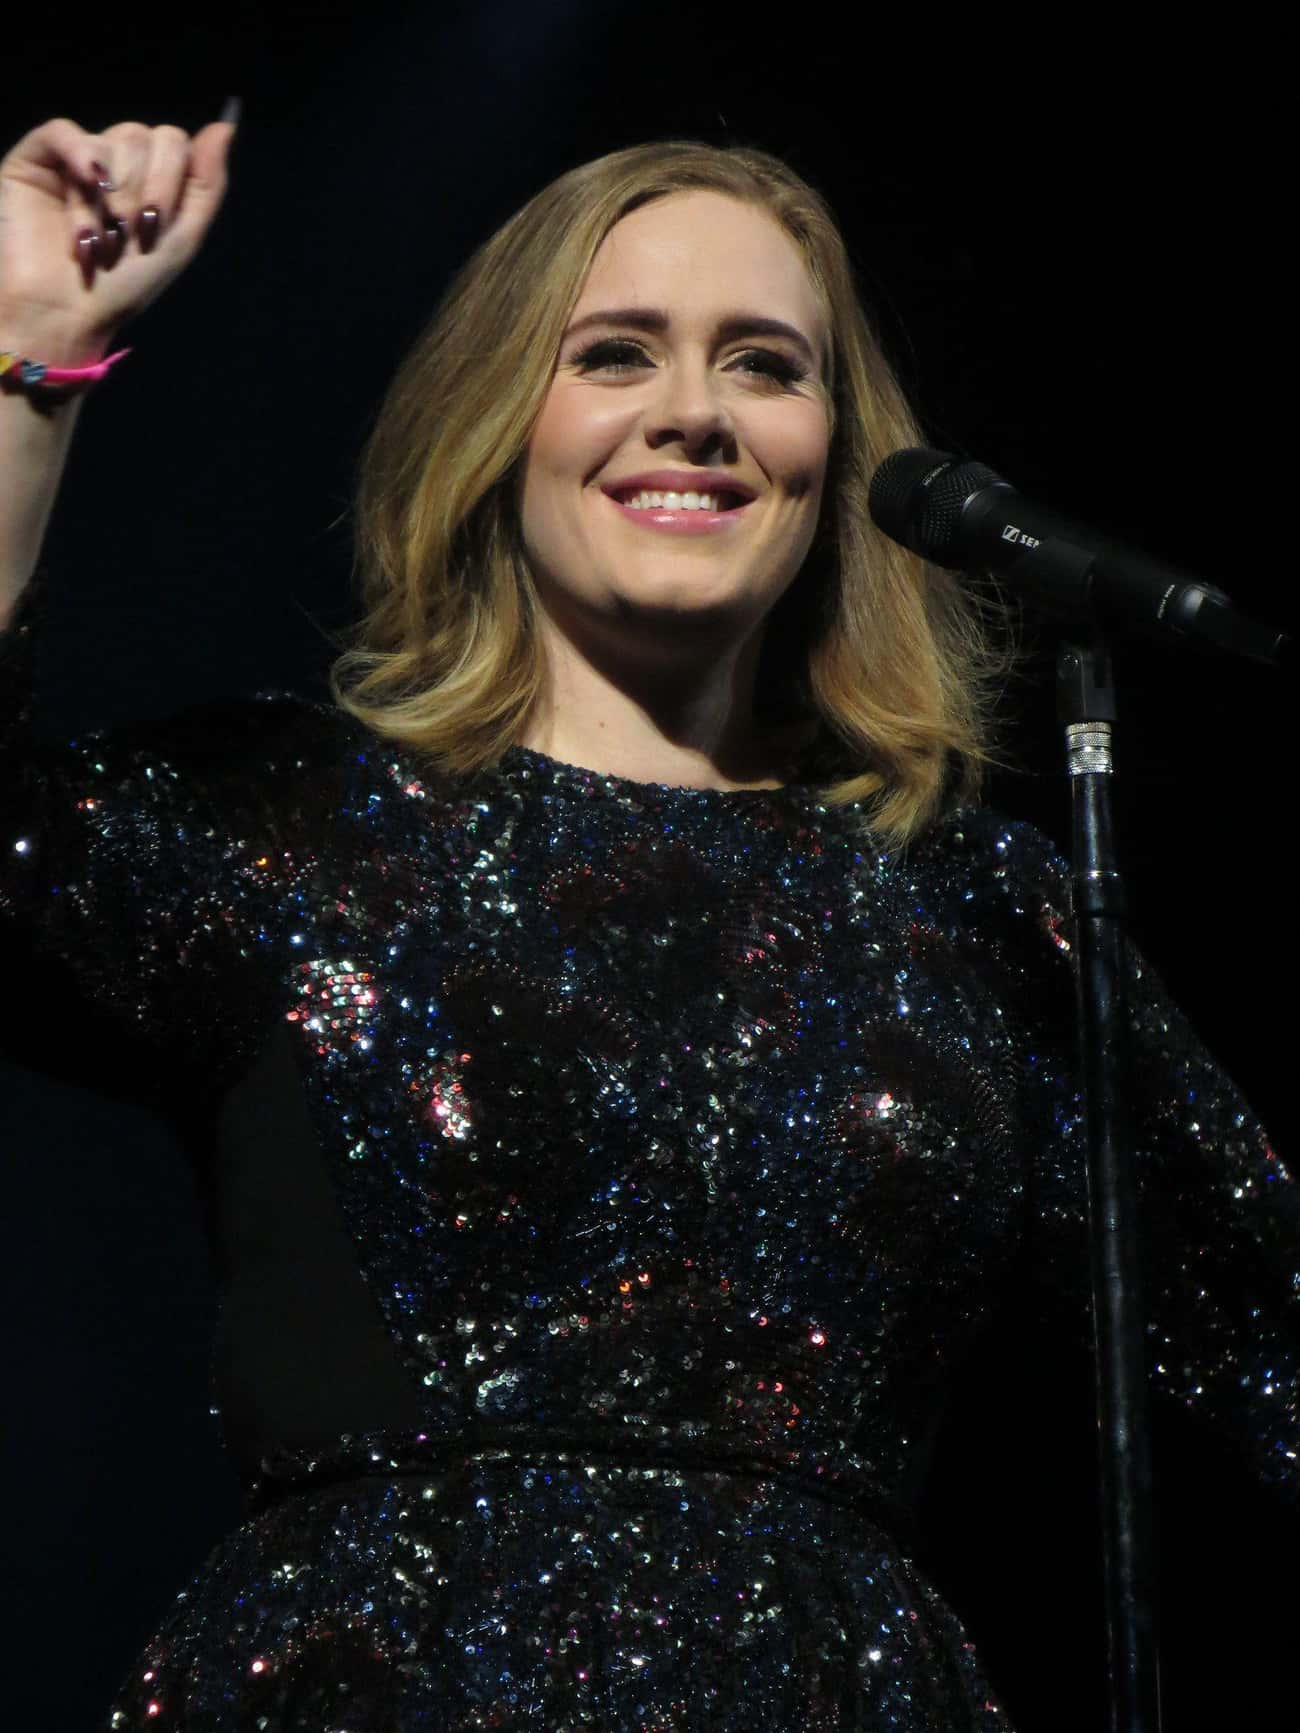 Adele Has A Secret Twitter is listed (or ranked) 4 on the list Celebs Who Have Aced Hiding Their Secret Social Media Accounts